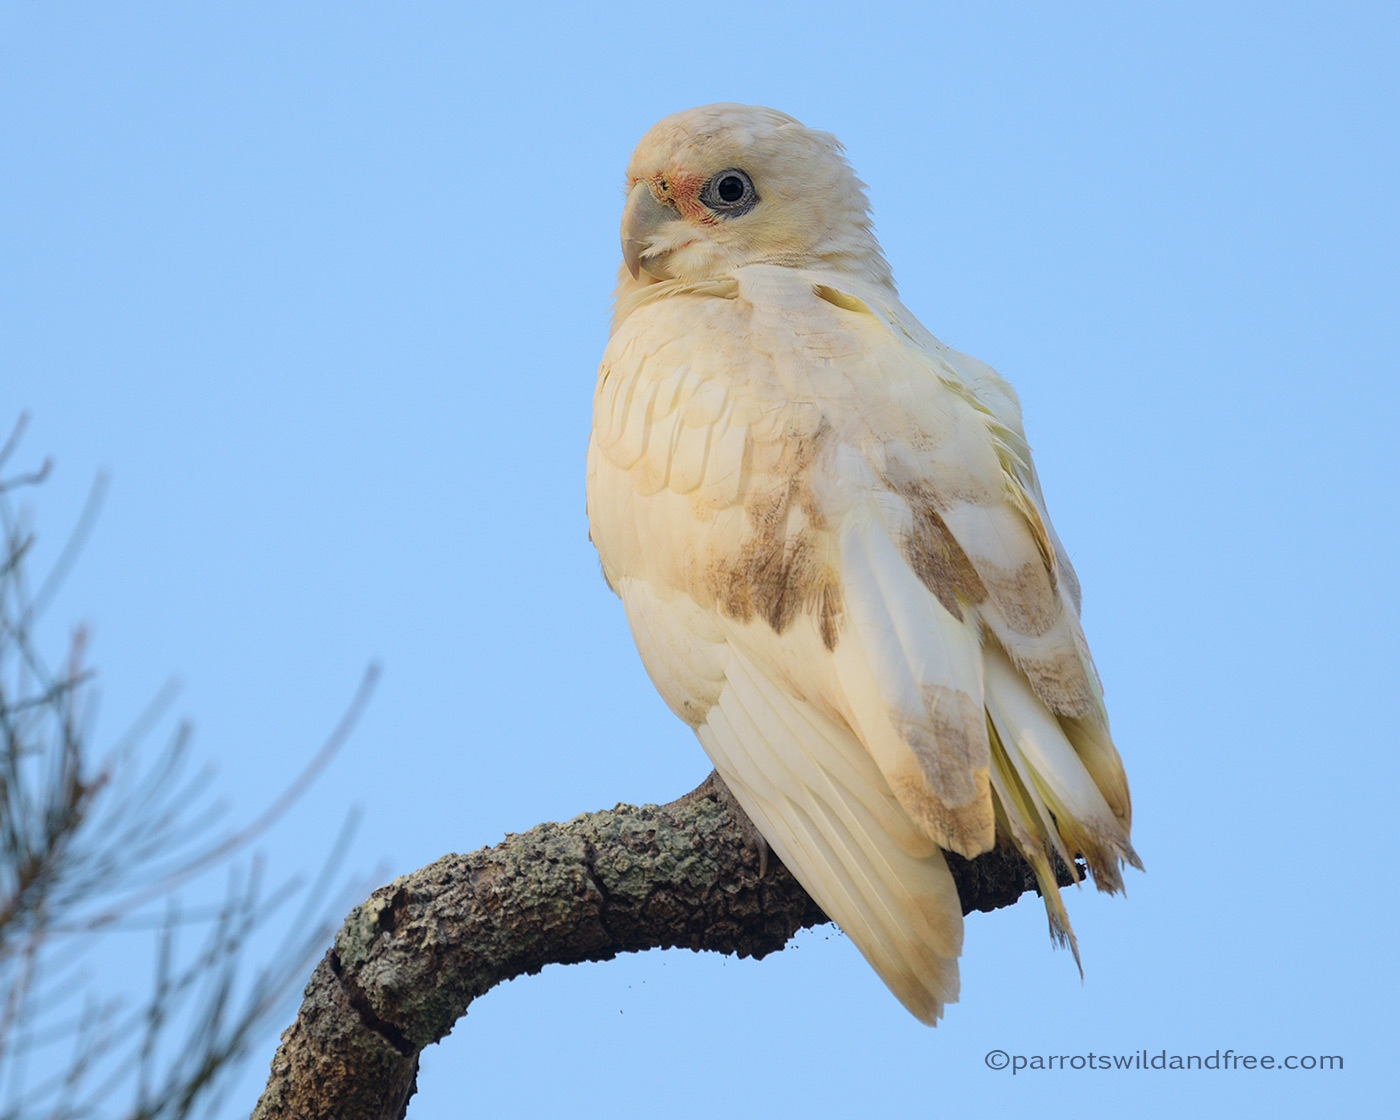 Little Corella with possible PBFD psittacine beak and feather disease